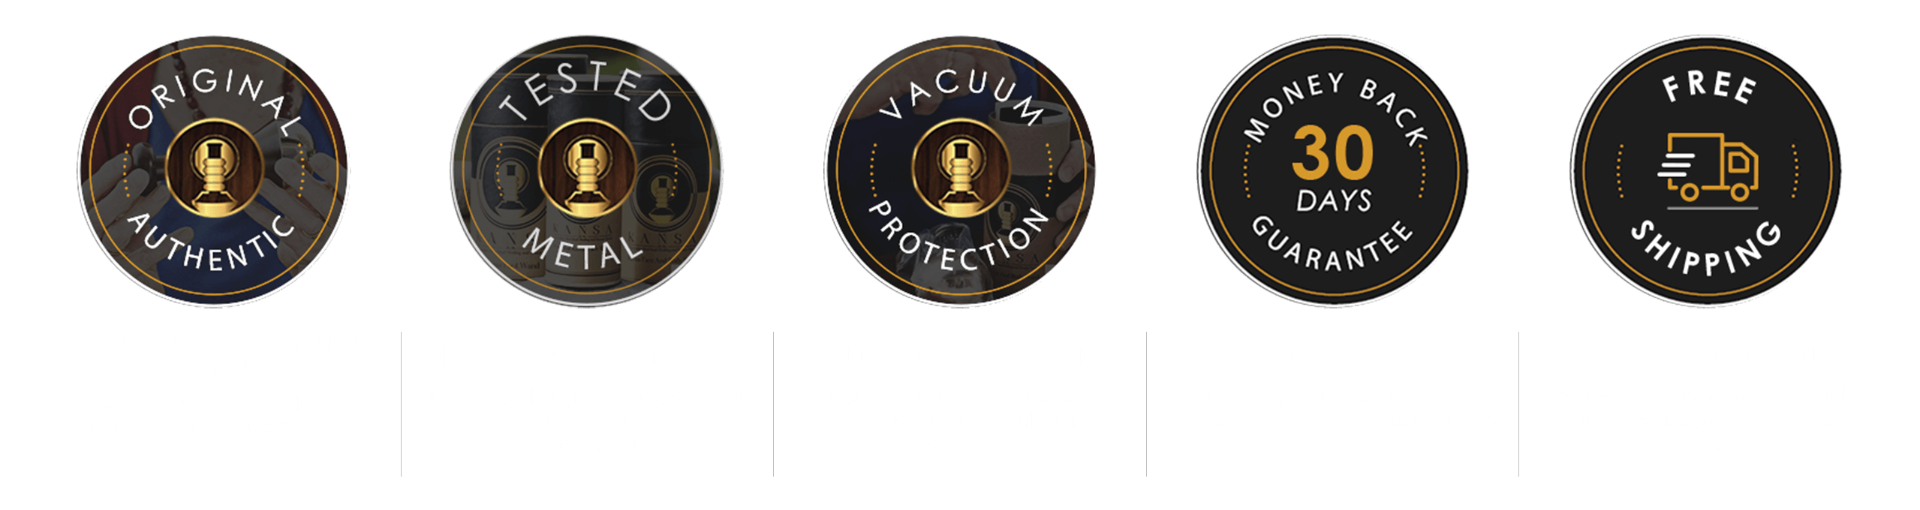 iYURA Trust Badges ensuring 1. Original, Authentic product 2. Tested Metal 3. Vacuum Protection 4. 30-Days Money-back Guarantee & 5. Free Shipping